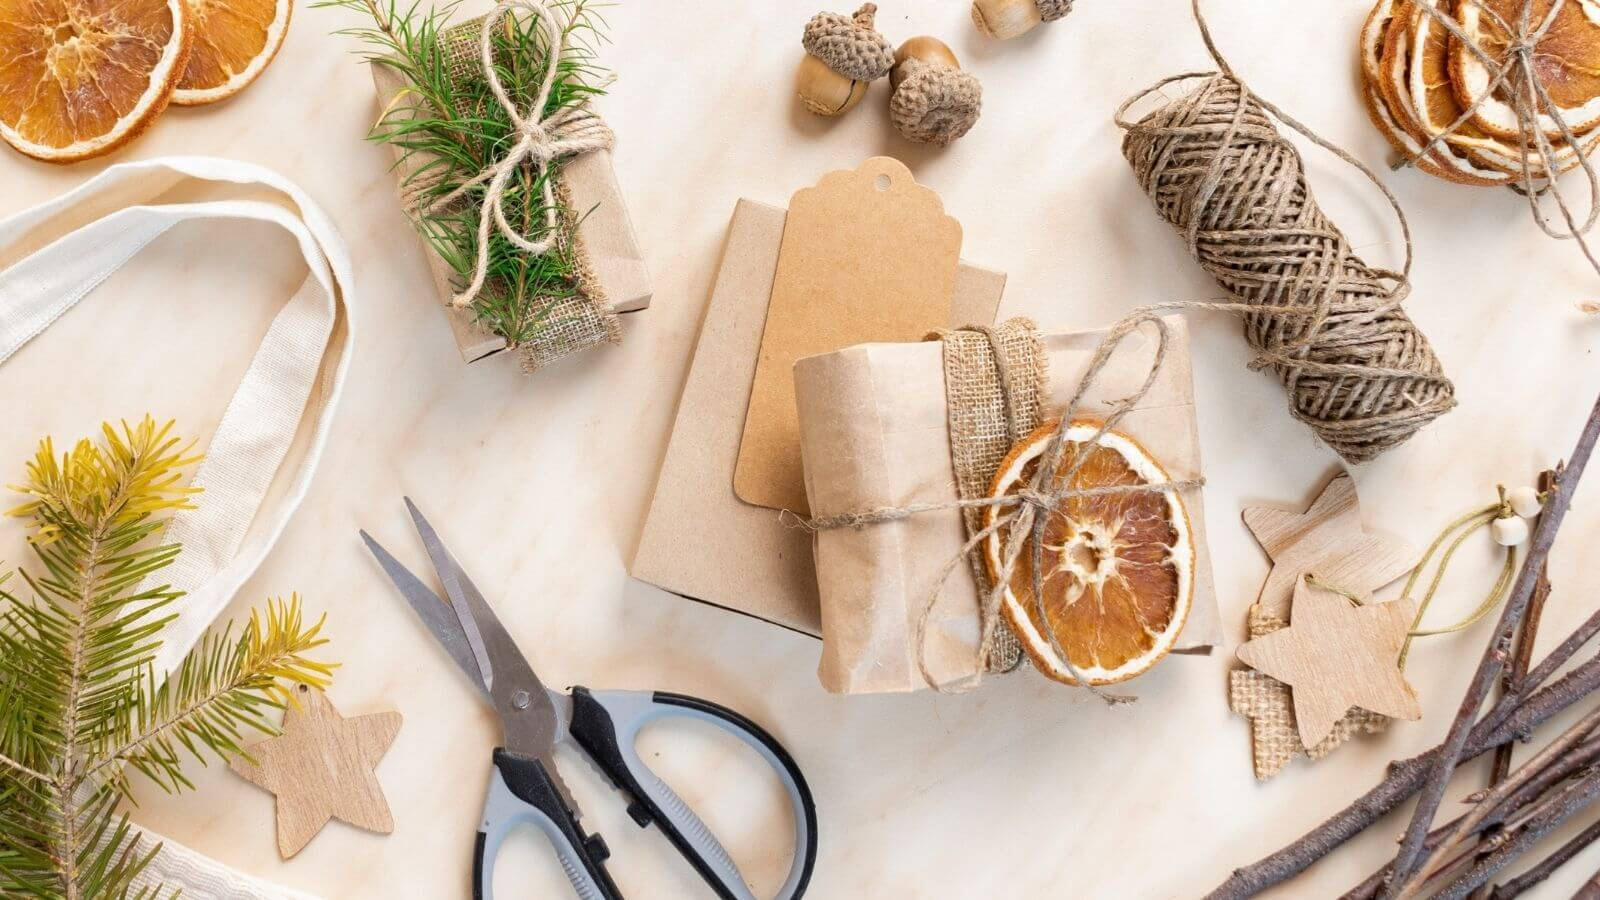 Selection of natural wrapping materials and wrapped gift